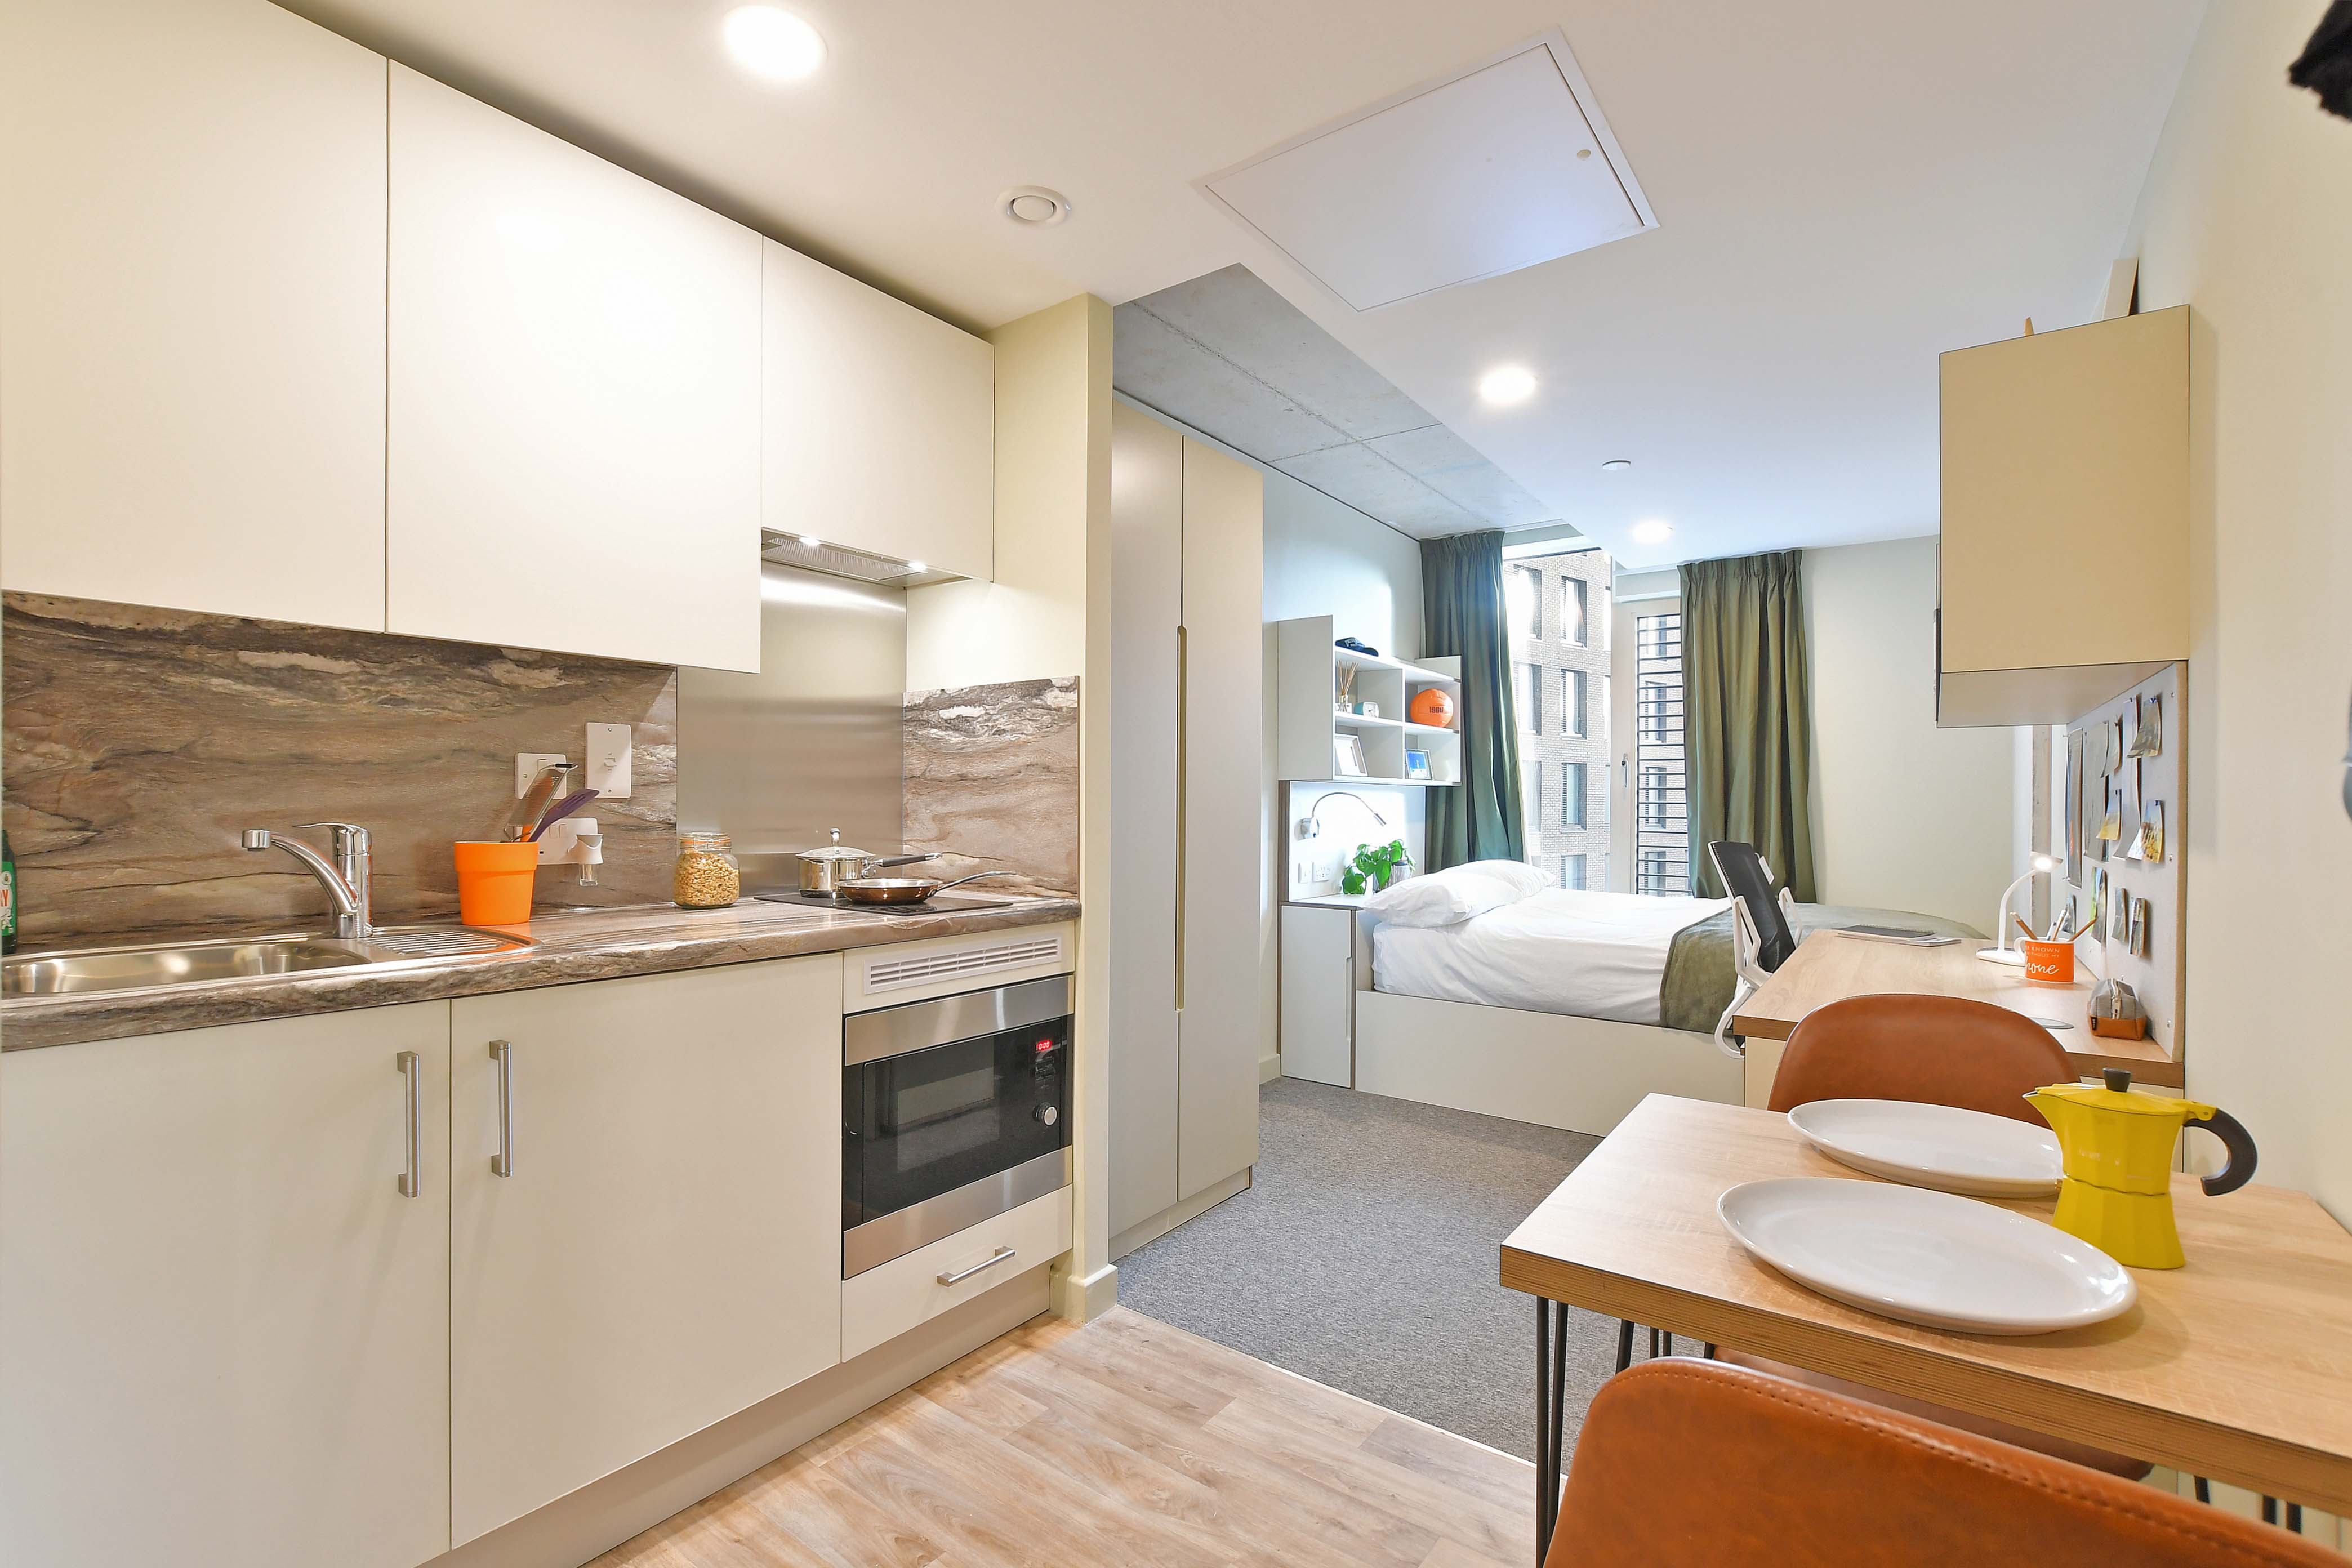 LIV Student Sheffield Accommodation